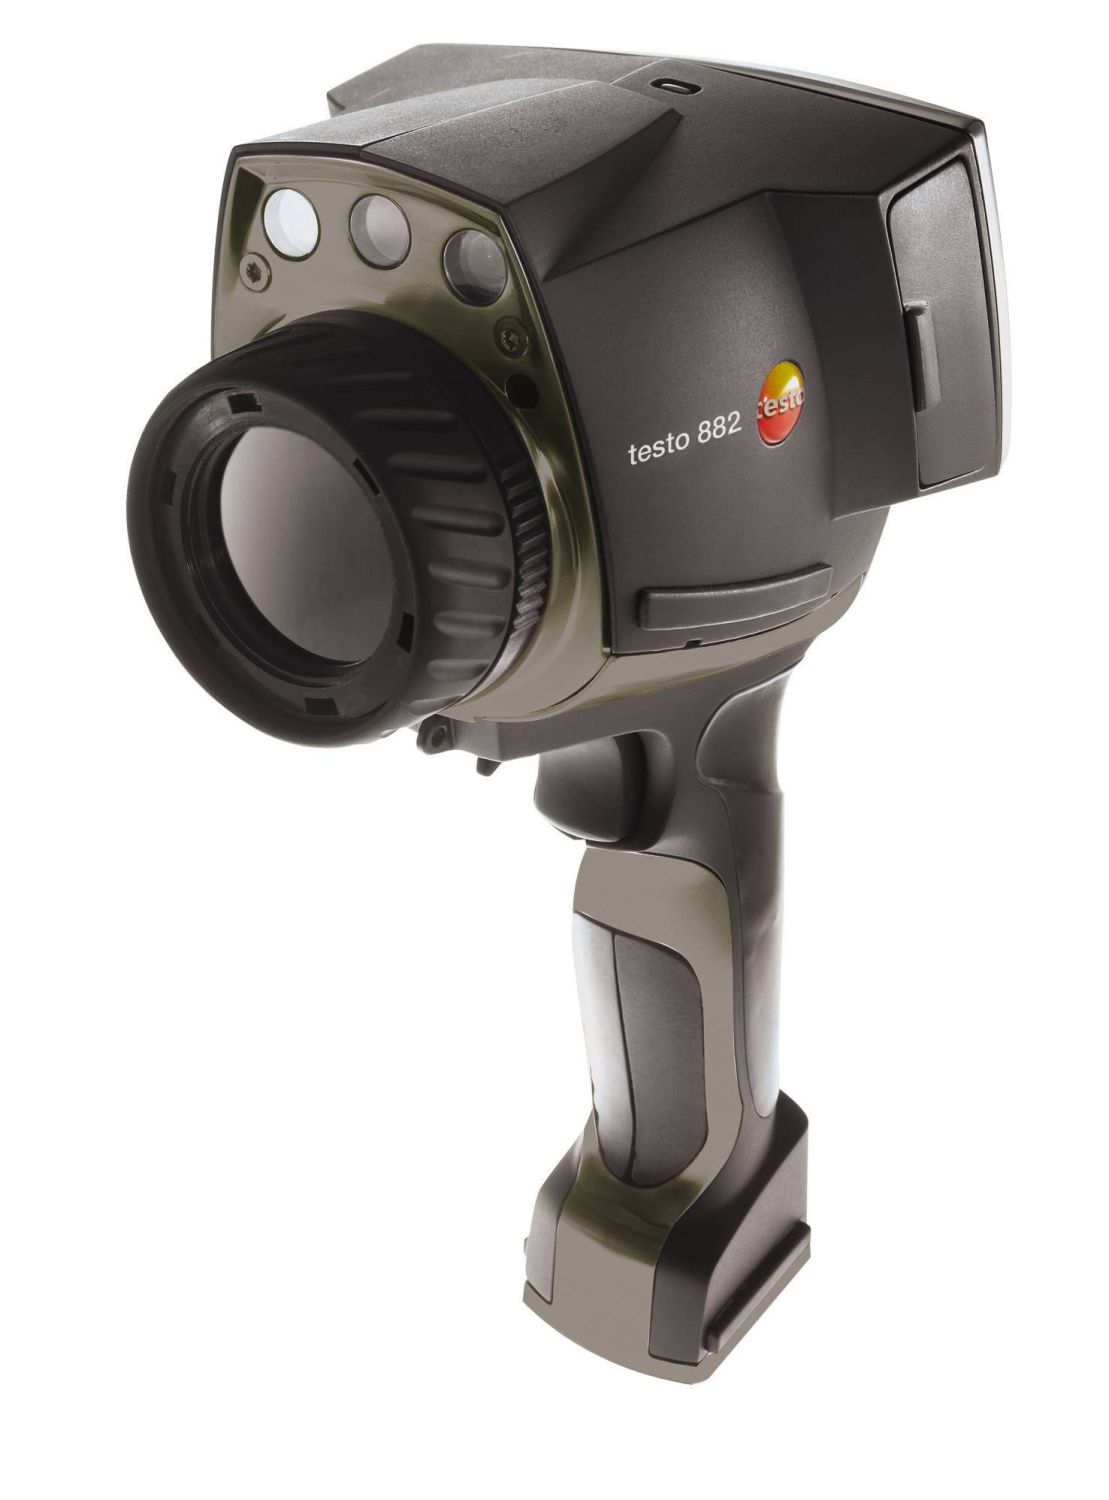 testo-882-instrument-thermography-001267.jpg